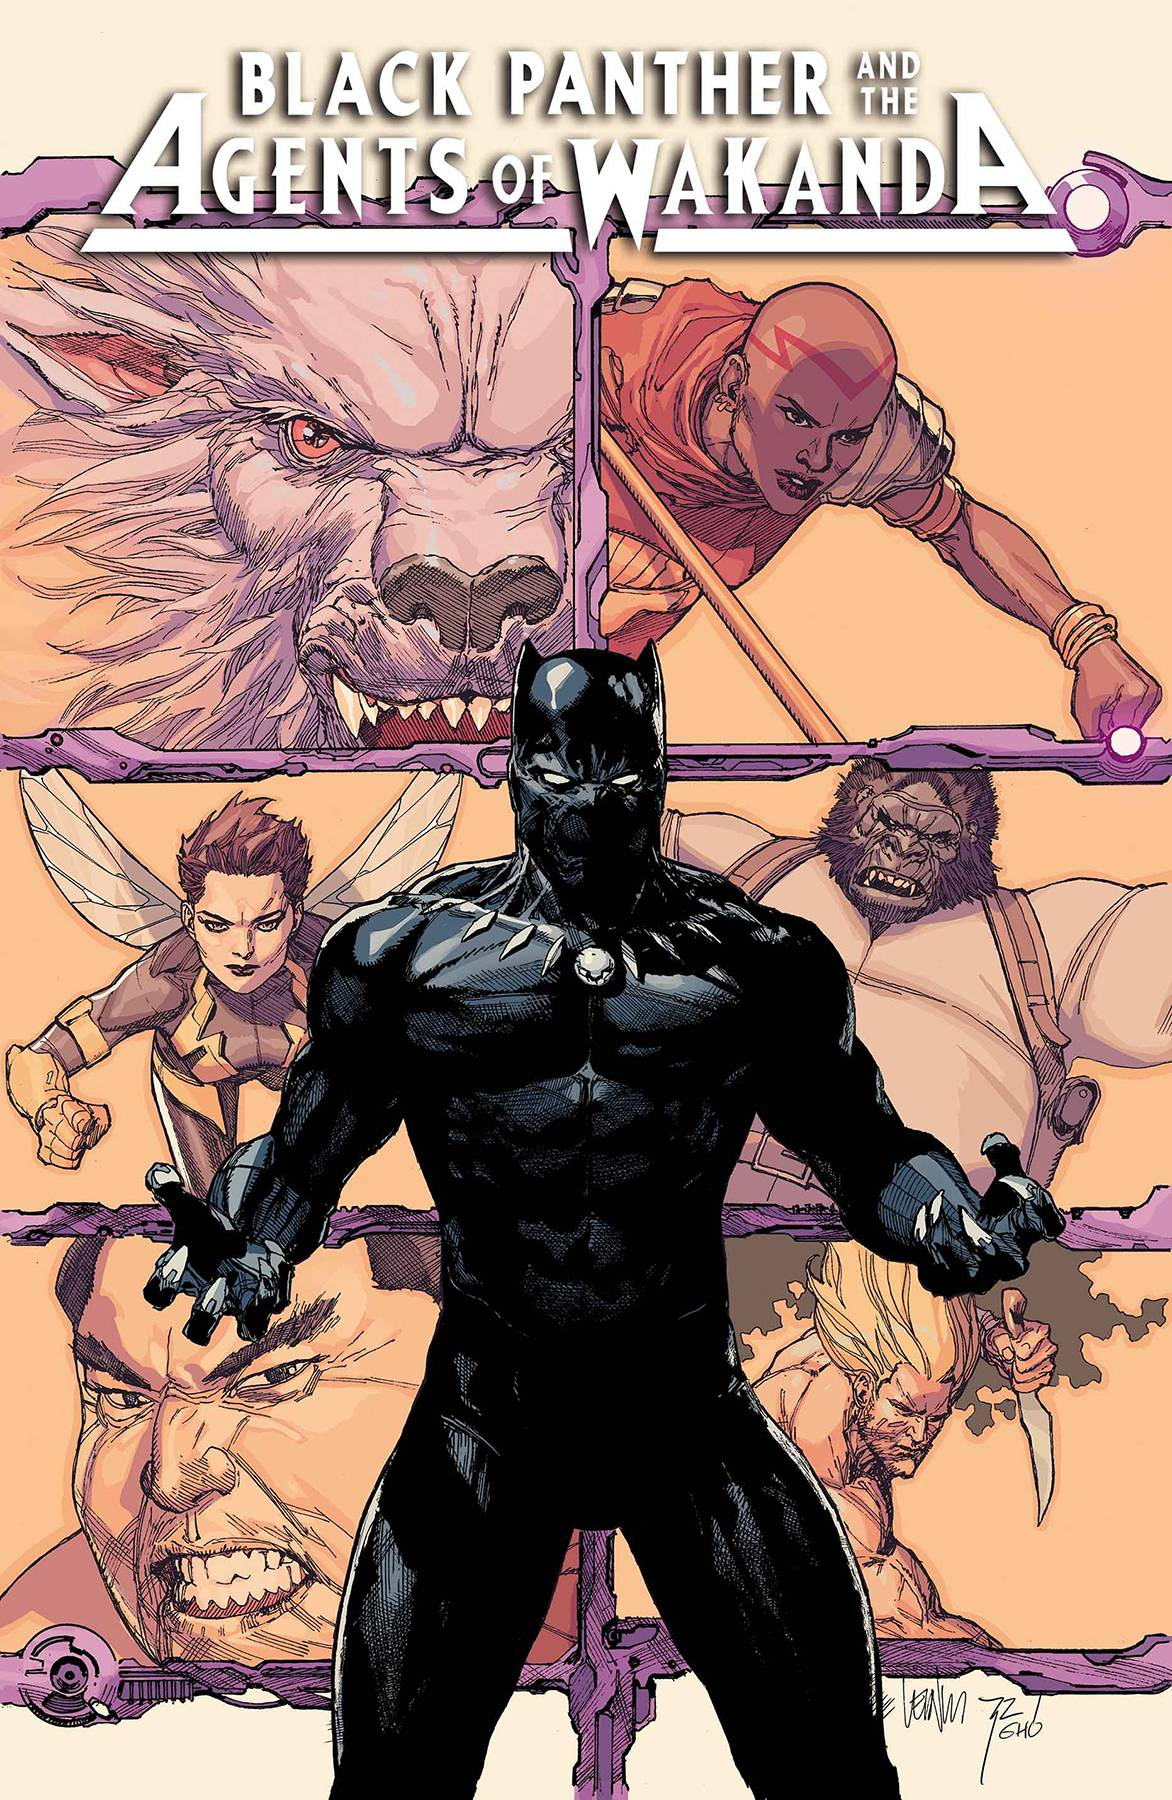 Black Panther and the Agents of Wakanda (2019) #1 Leinil Francis Yu Cover